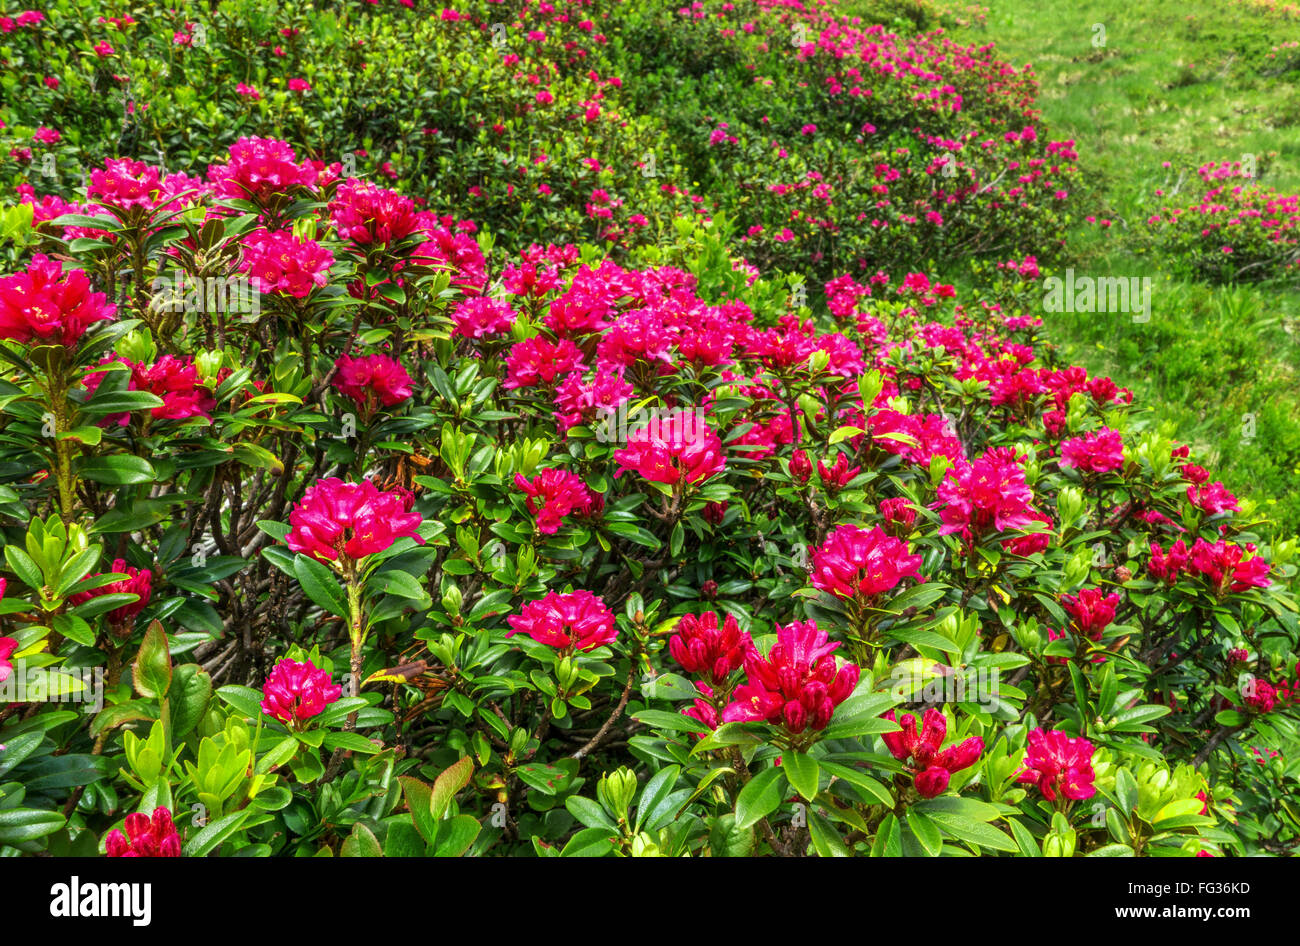 Many bushes of red blooming alpine roses in a green slope Stock Photo